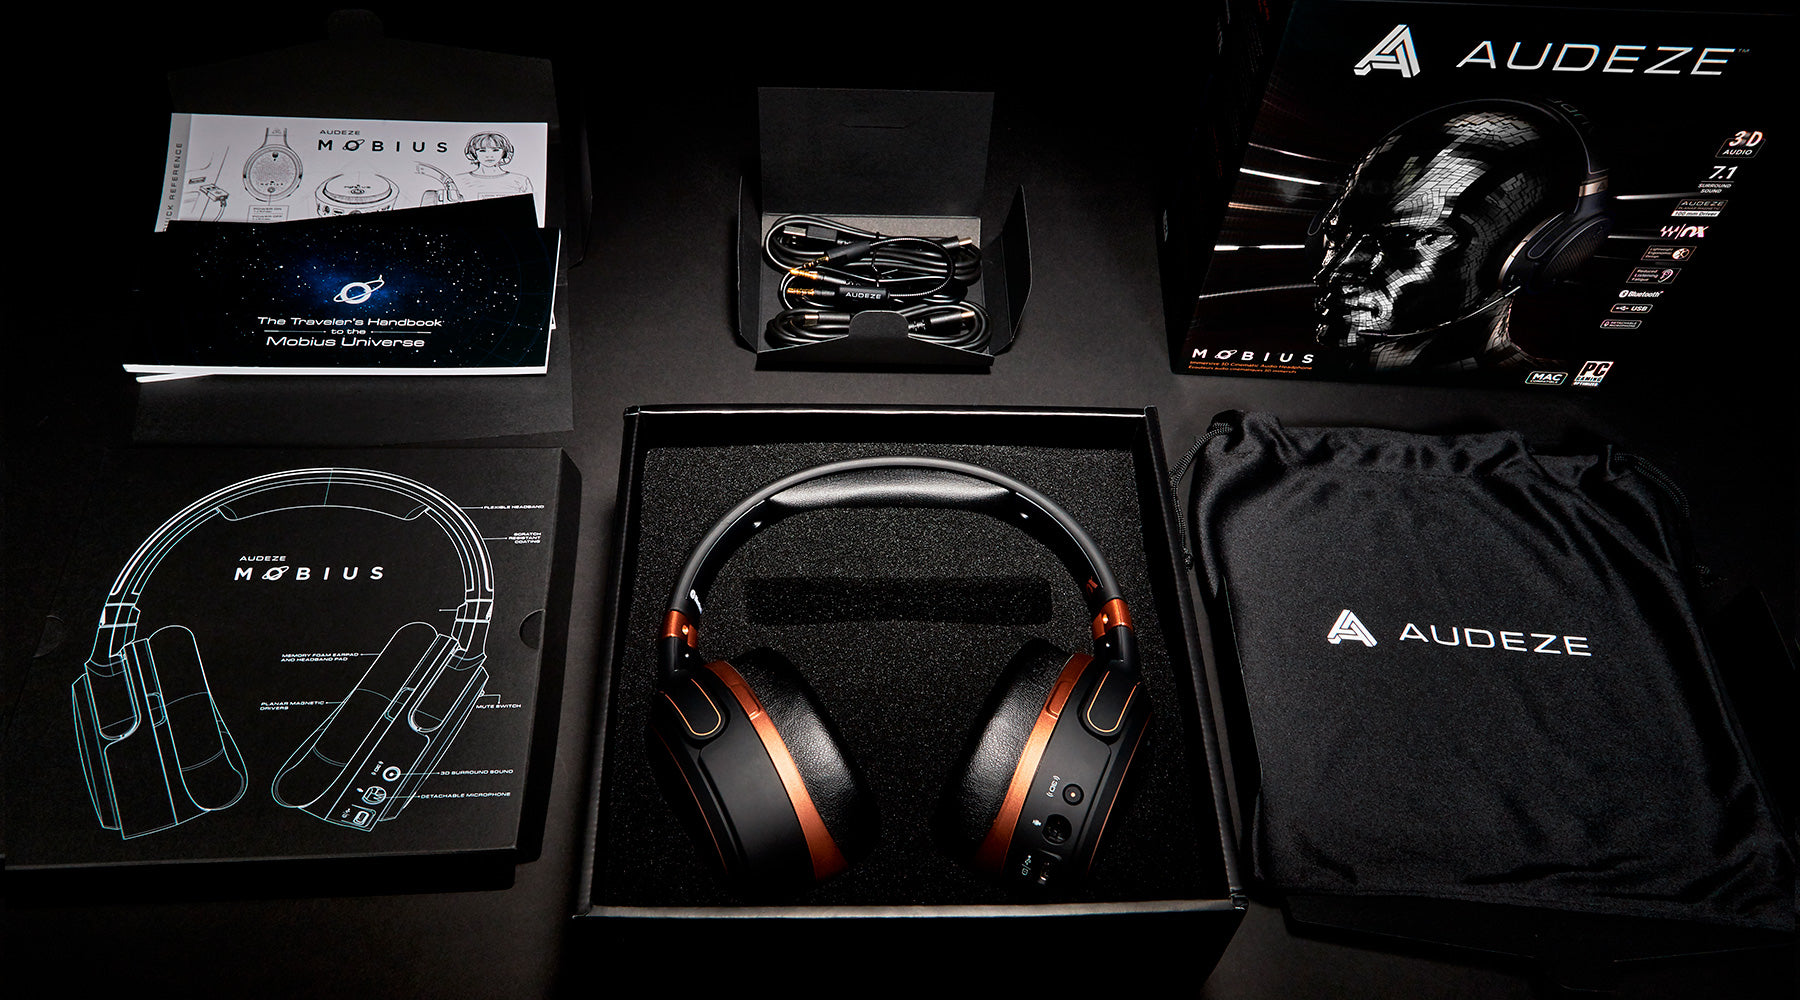 MOBIUS 3D AUDIO GAMING HEADPHONE